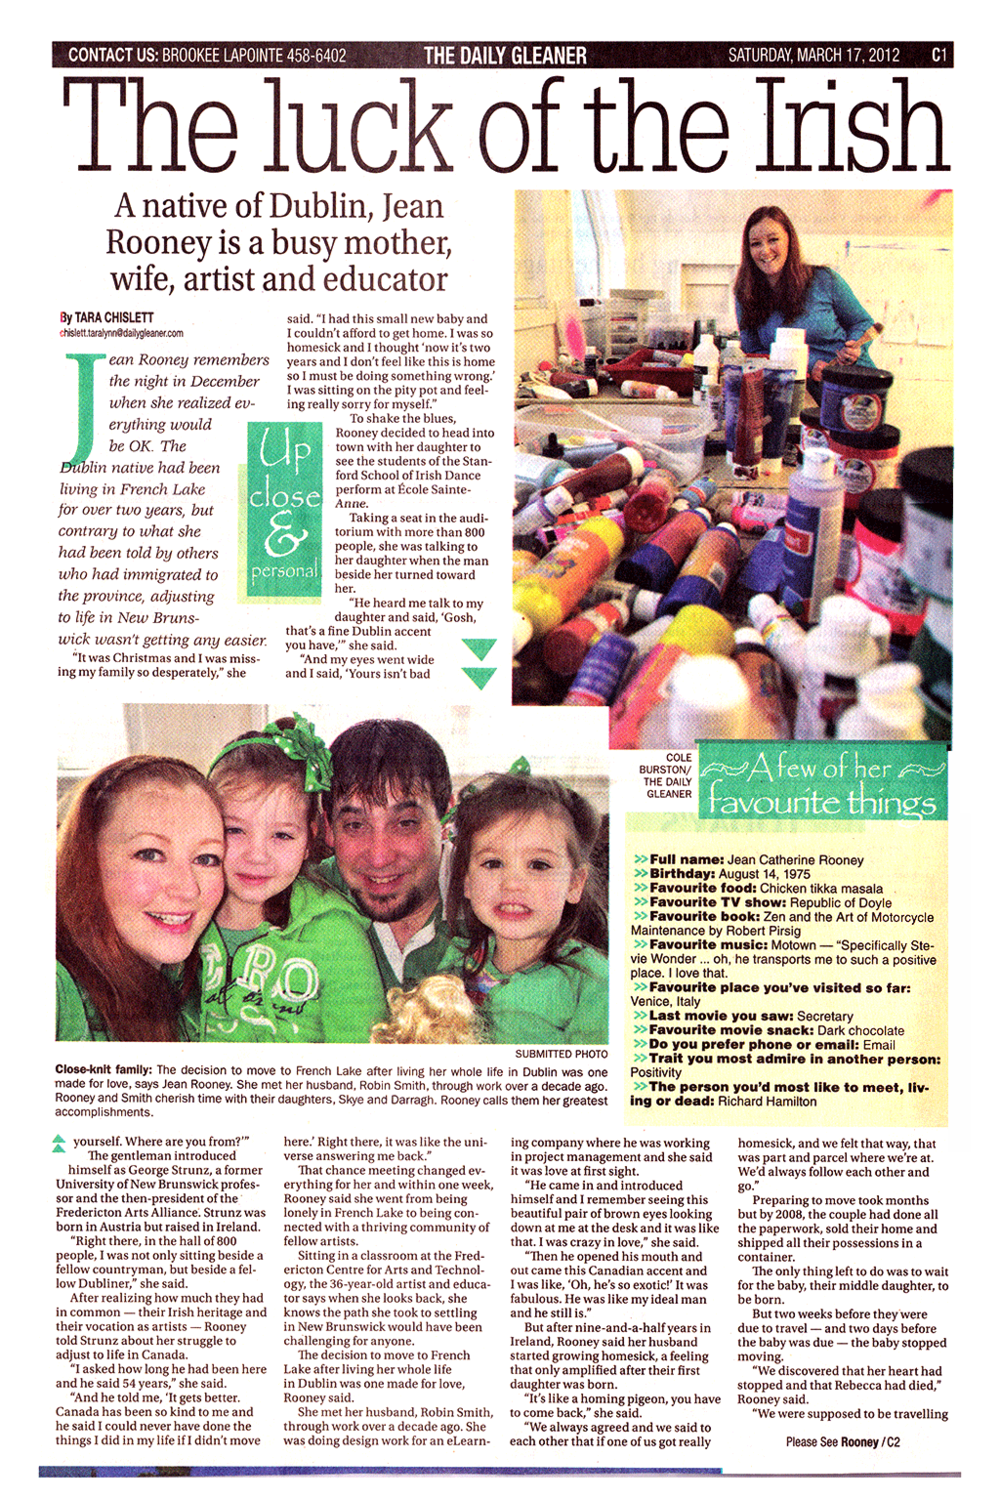 Jean Rooney Article on Immigrant Artist 2012